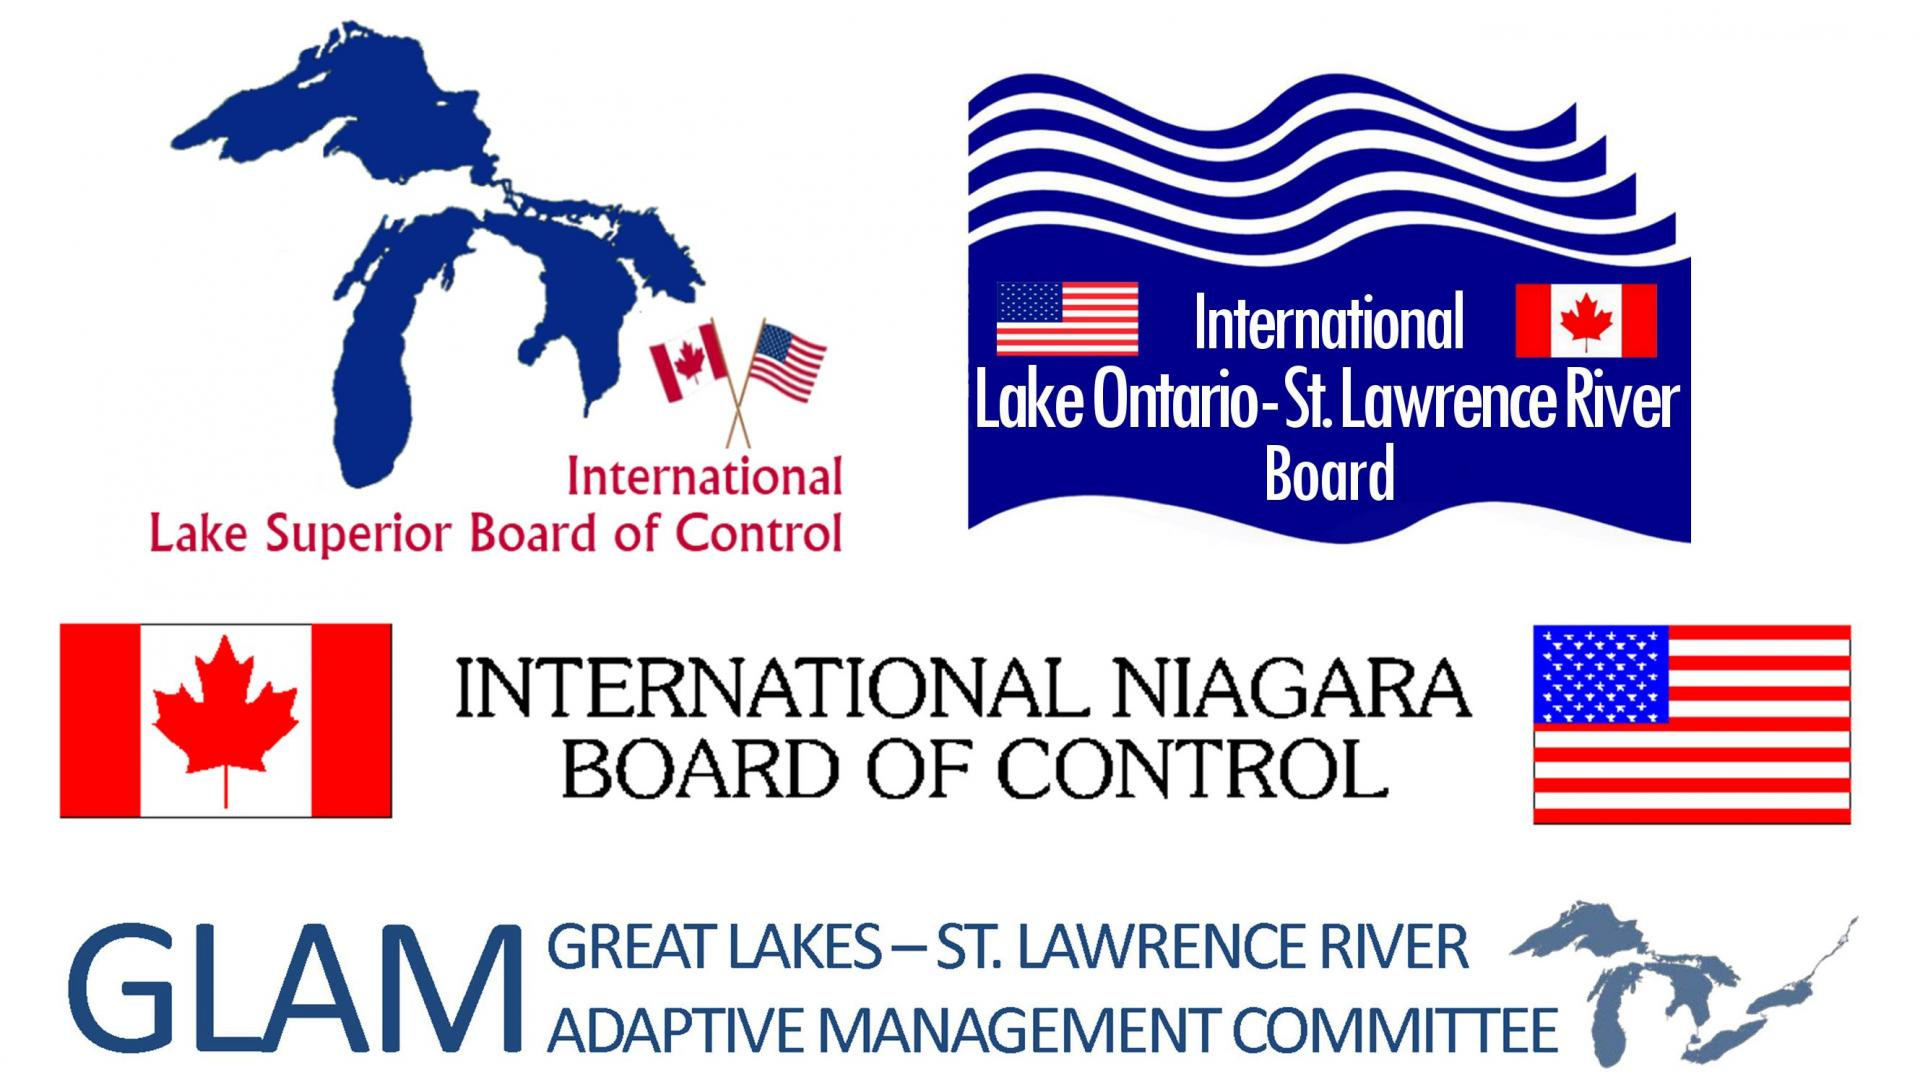 Logos of all three Great Lakes regulation boards